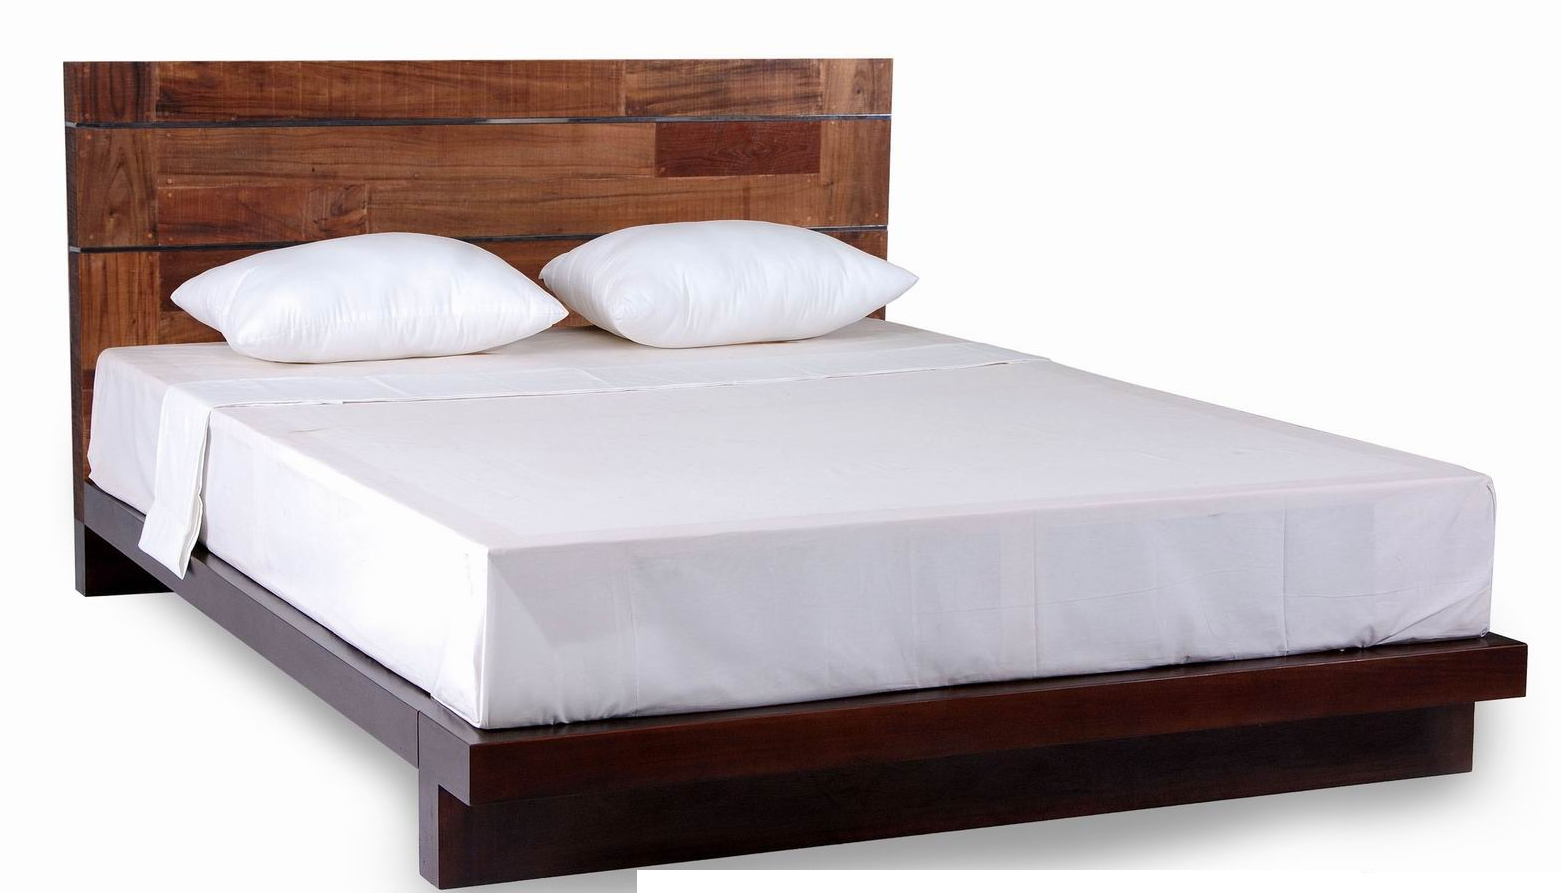 Bed hd png transparent bed hd png images pluspng for Hd furniture designs